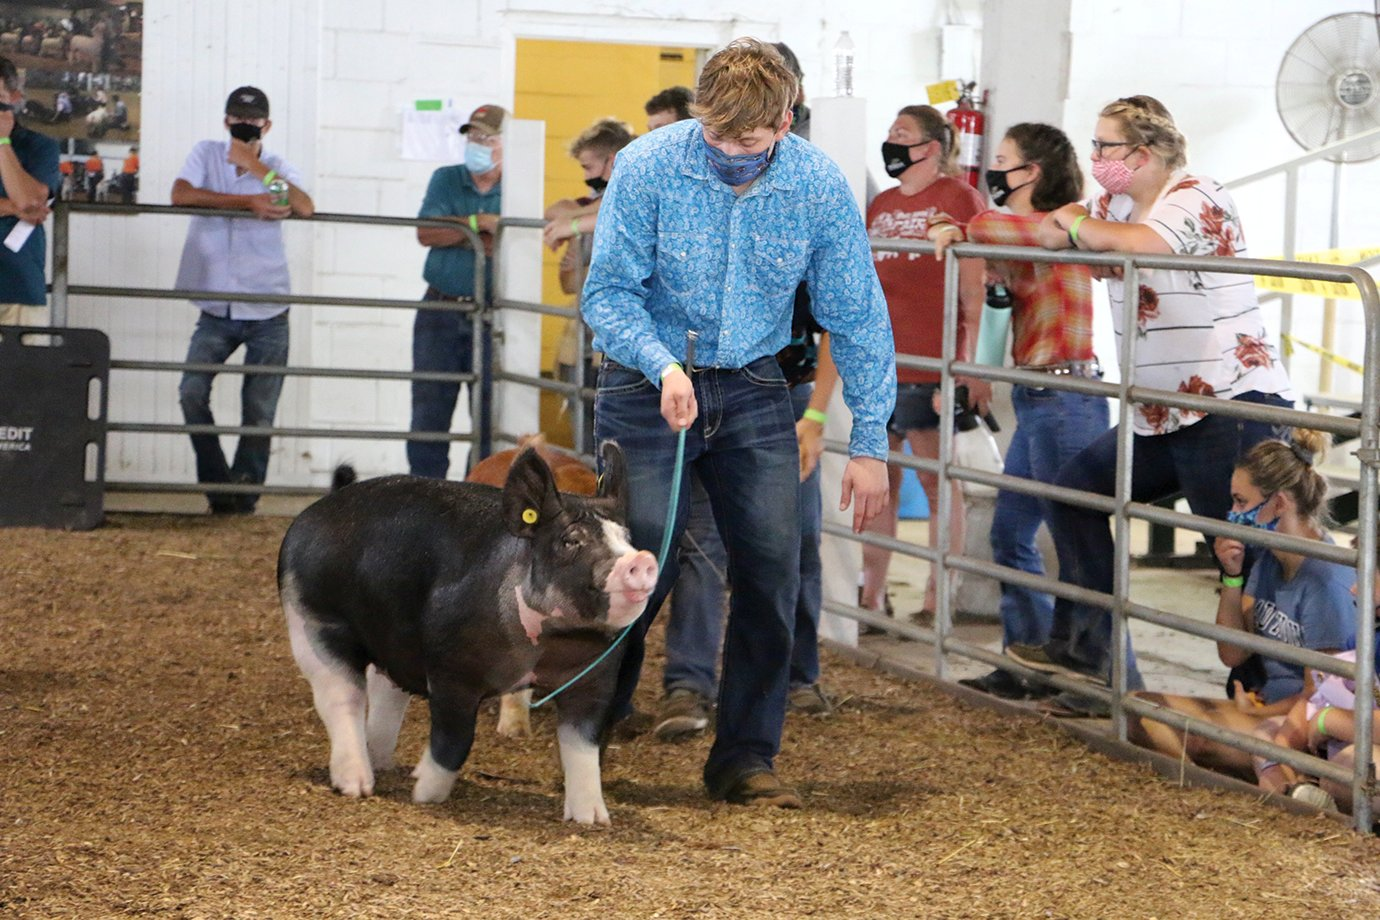 Collin Martin and his Reserve Grand Champion Gilt strut around the ring this weekend at the 2020 Montgomery County 4-H Fair. The 2020 4-H Fair marks the first time Southmont